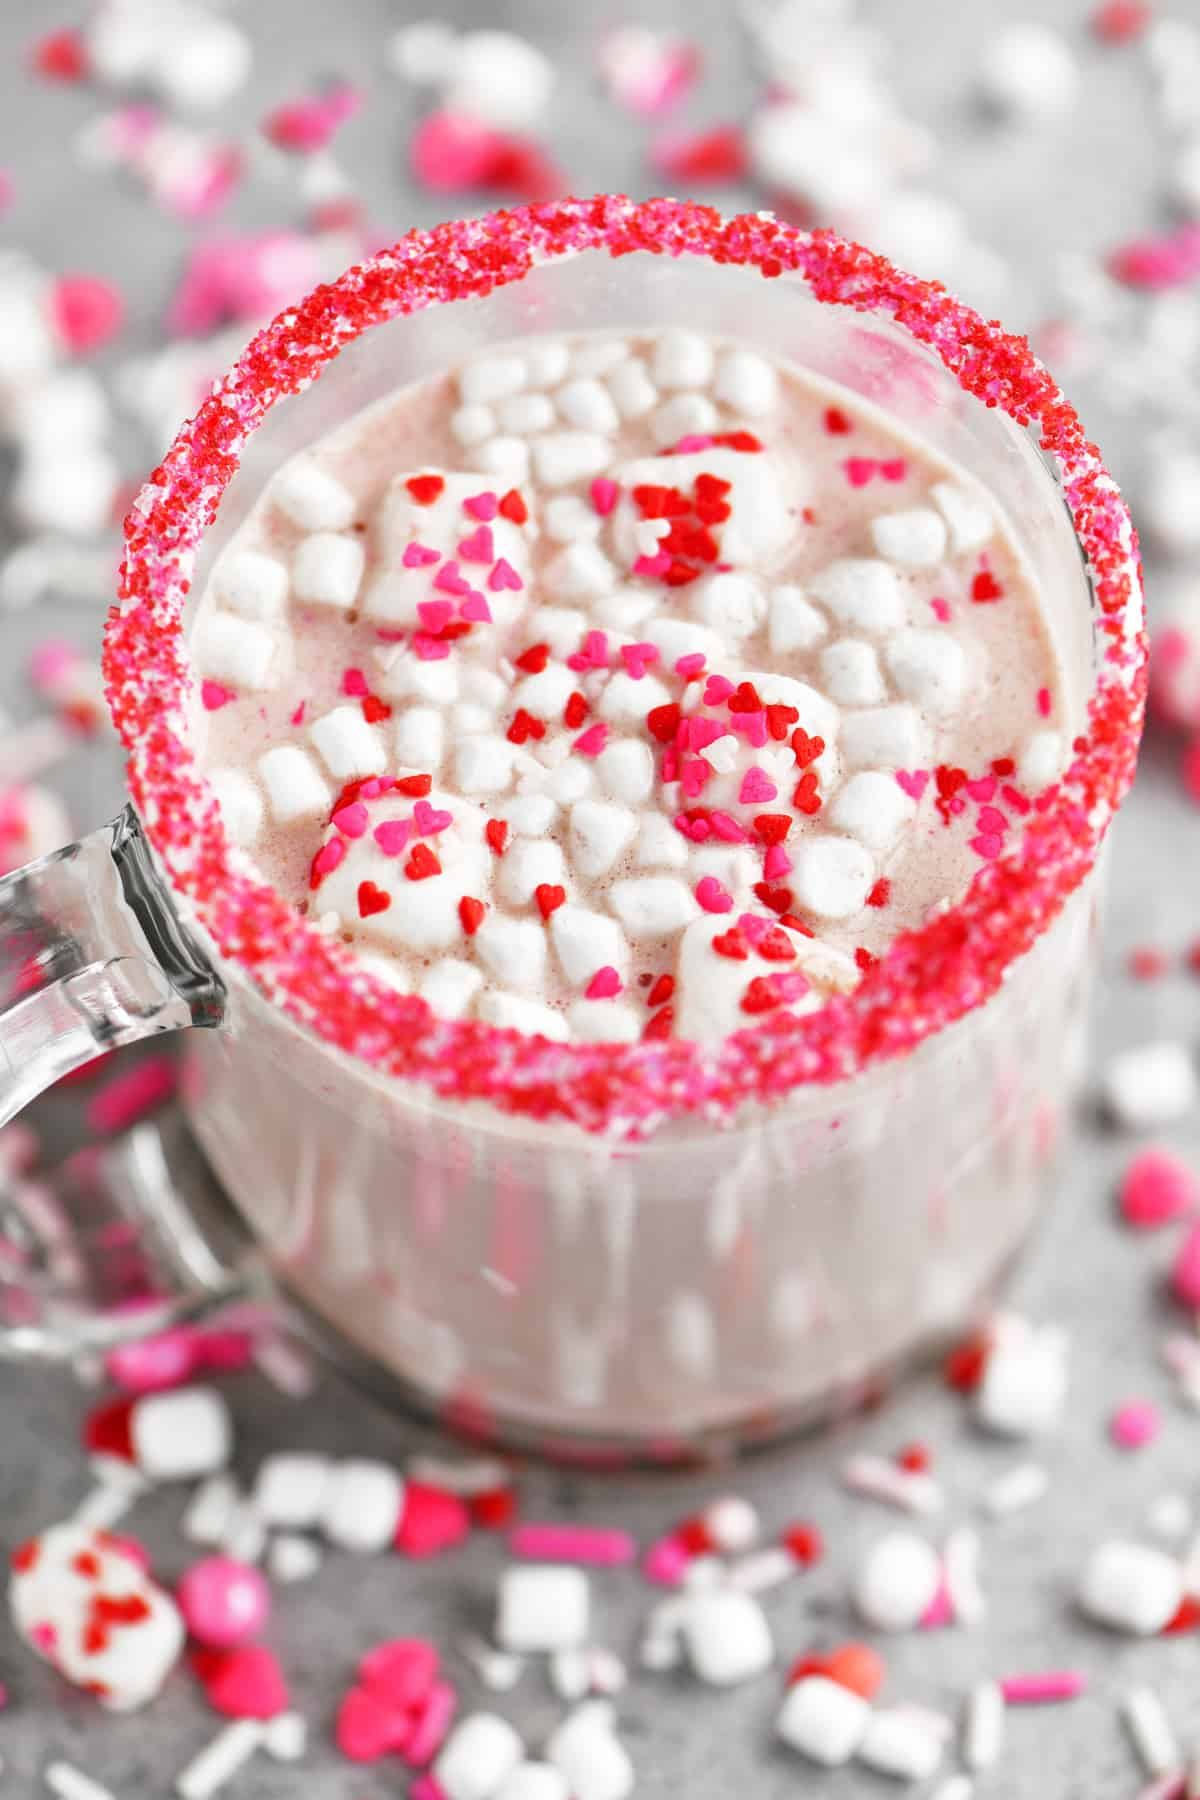 marshmallows and heart shaped sprinkles in a cup of hot chocolate